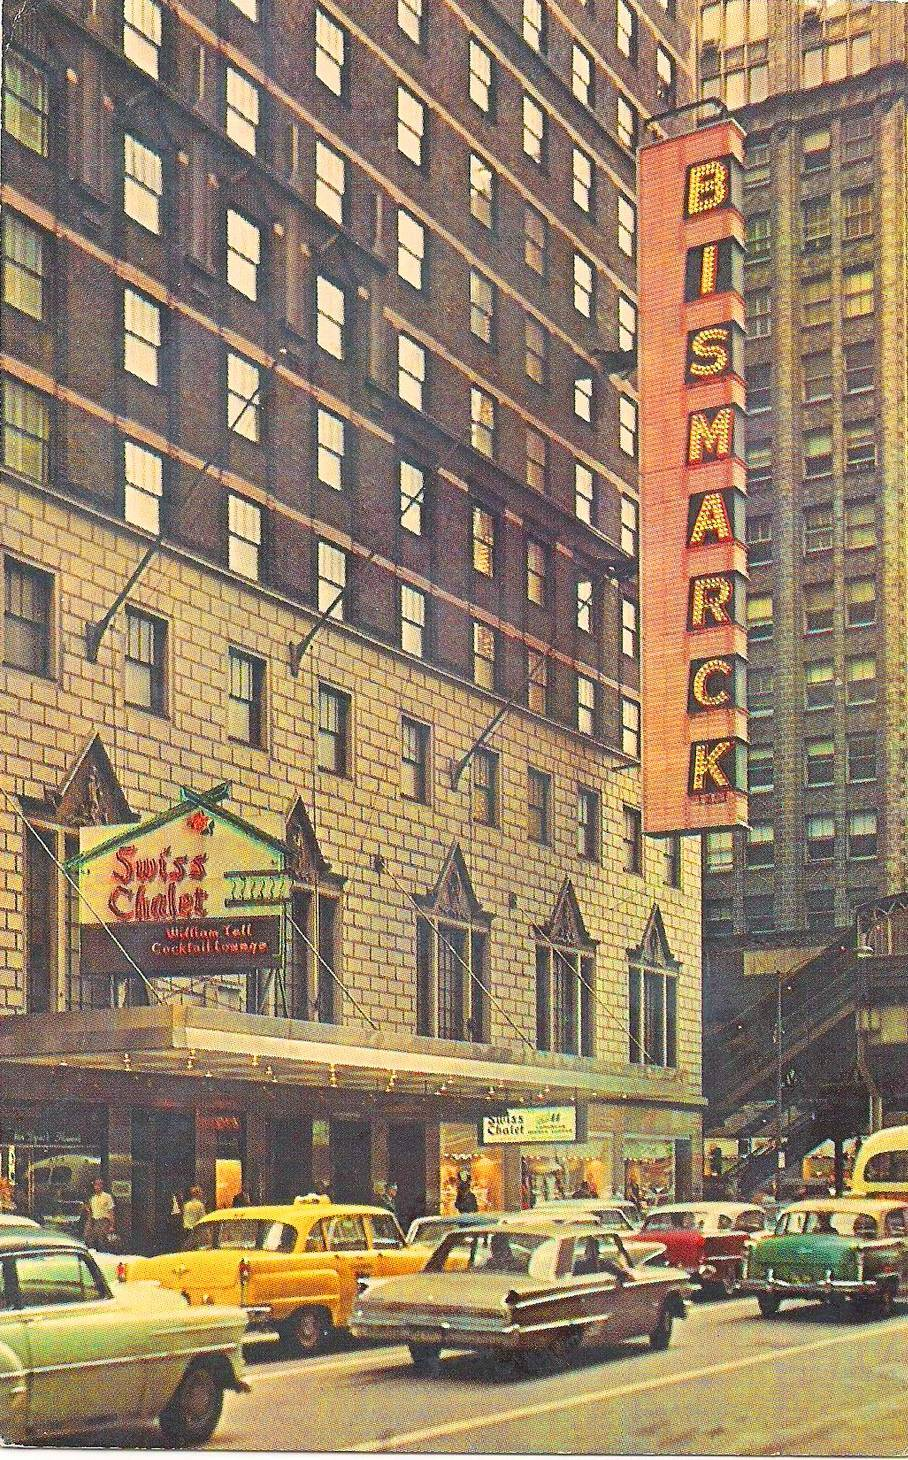 postcard-chicago-bismarck-hotel-street-view-note-swiss-chalet-restaurant-1966.jpg